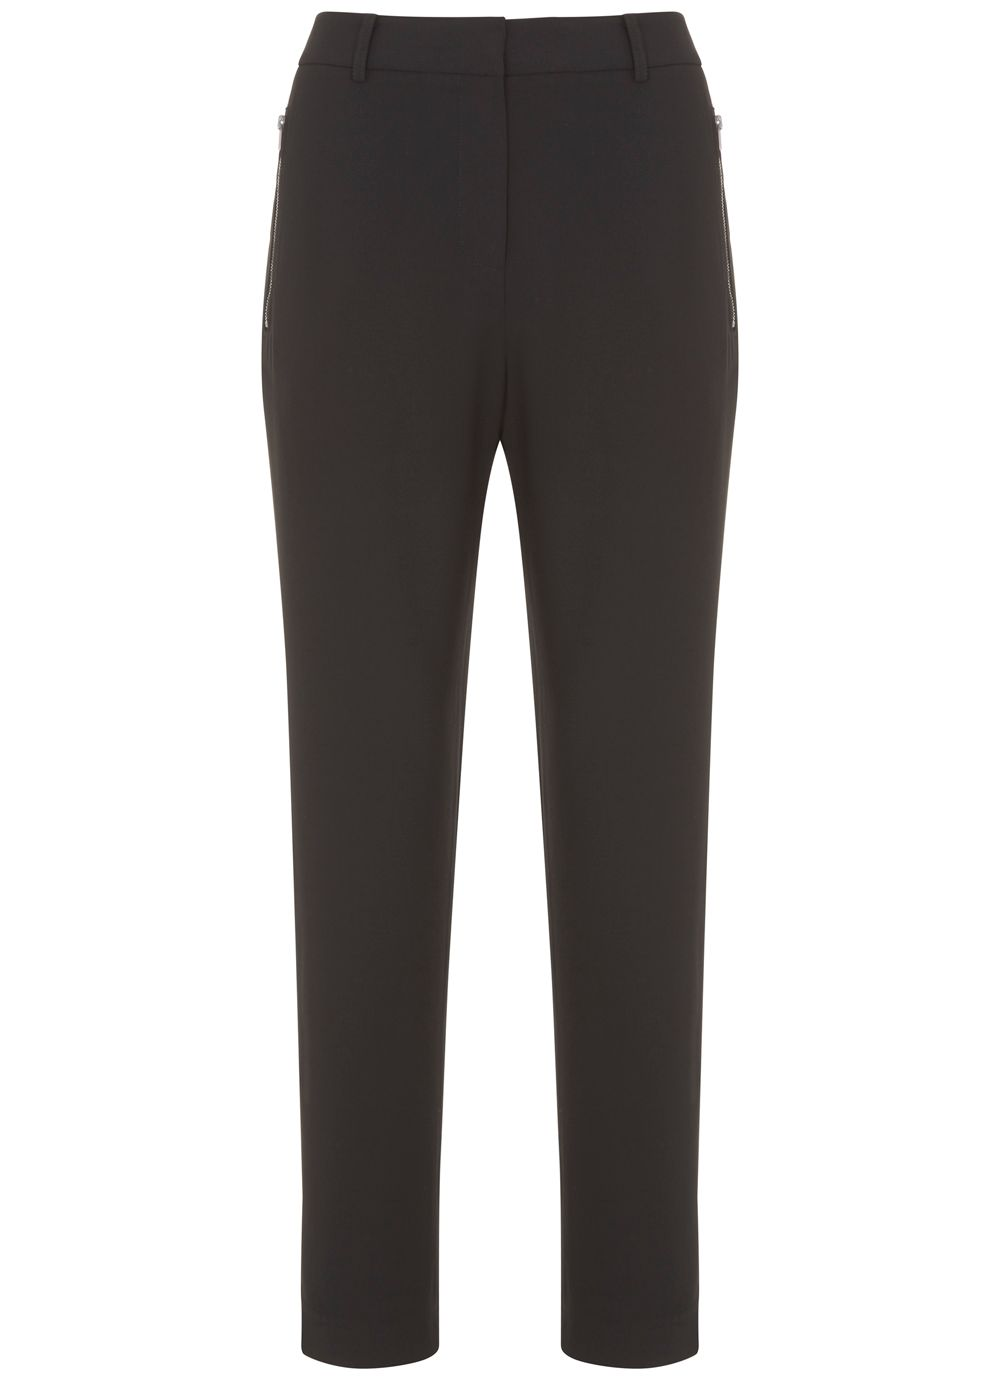 Mint Velvet Black & Khaki Stripe Luxe Zip Pant, Black